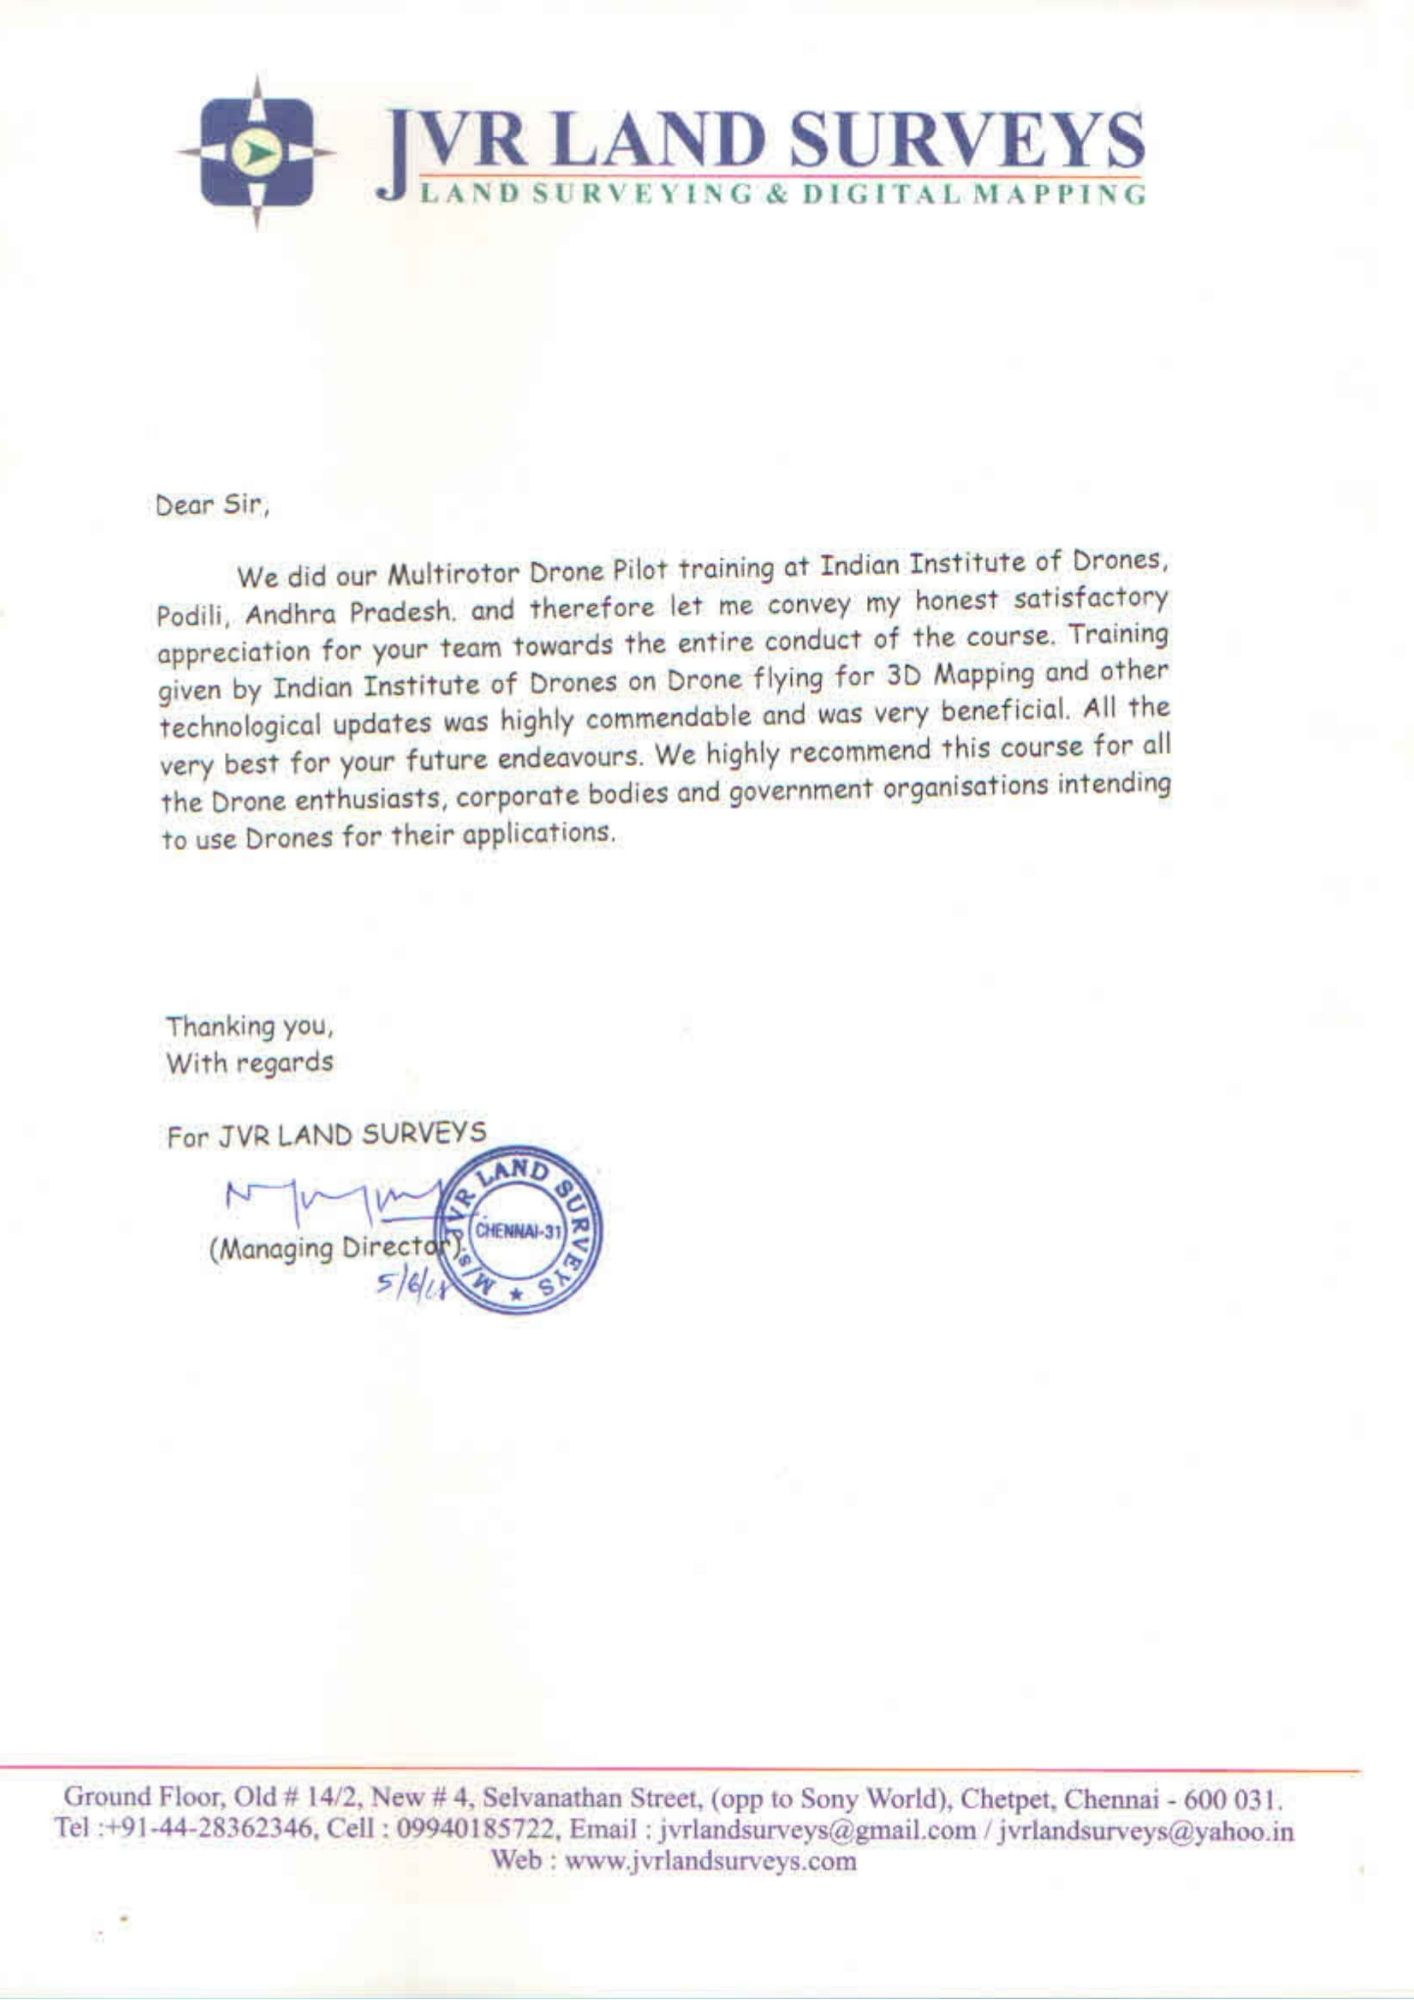 Satisfactory Letter for Drone Training Received from JVR Land Surveys